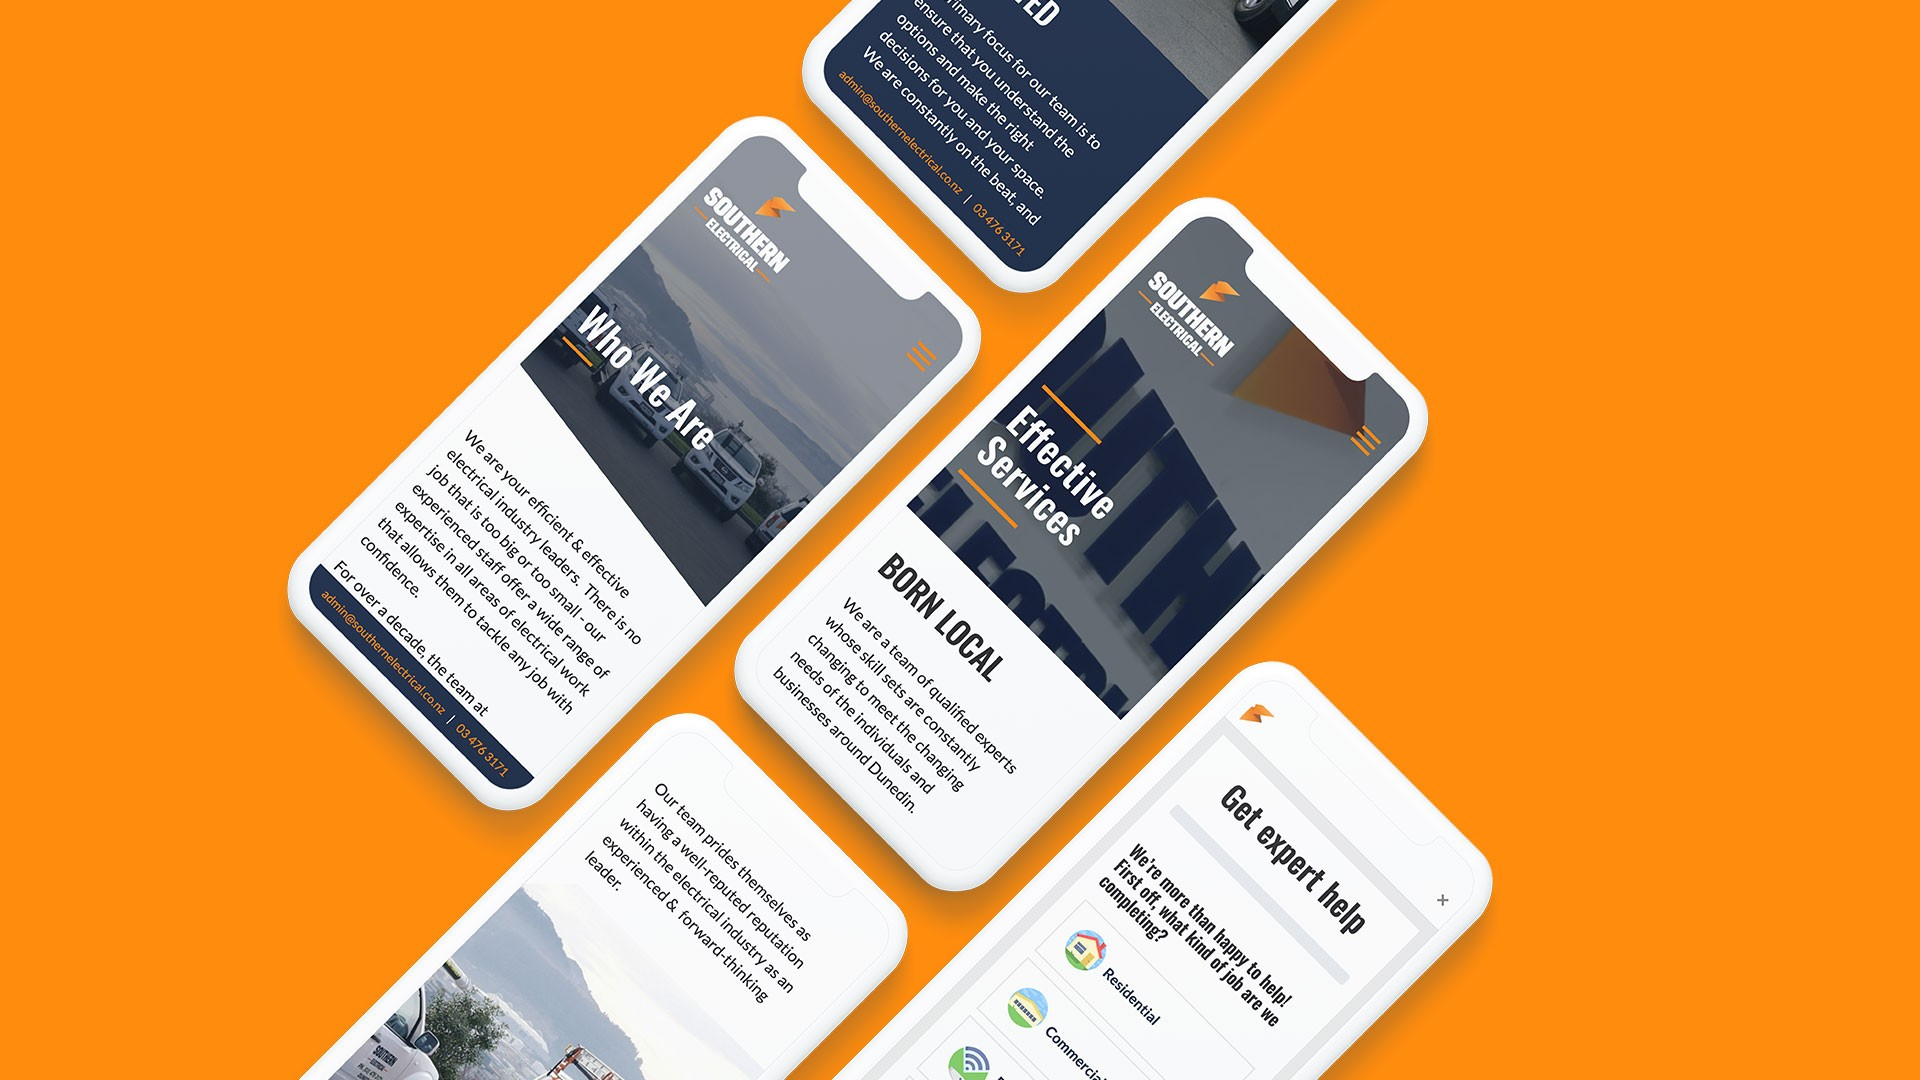 Southern Elect mobile mockup 5 phones